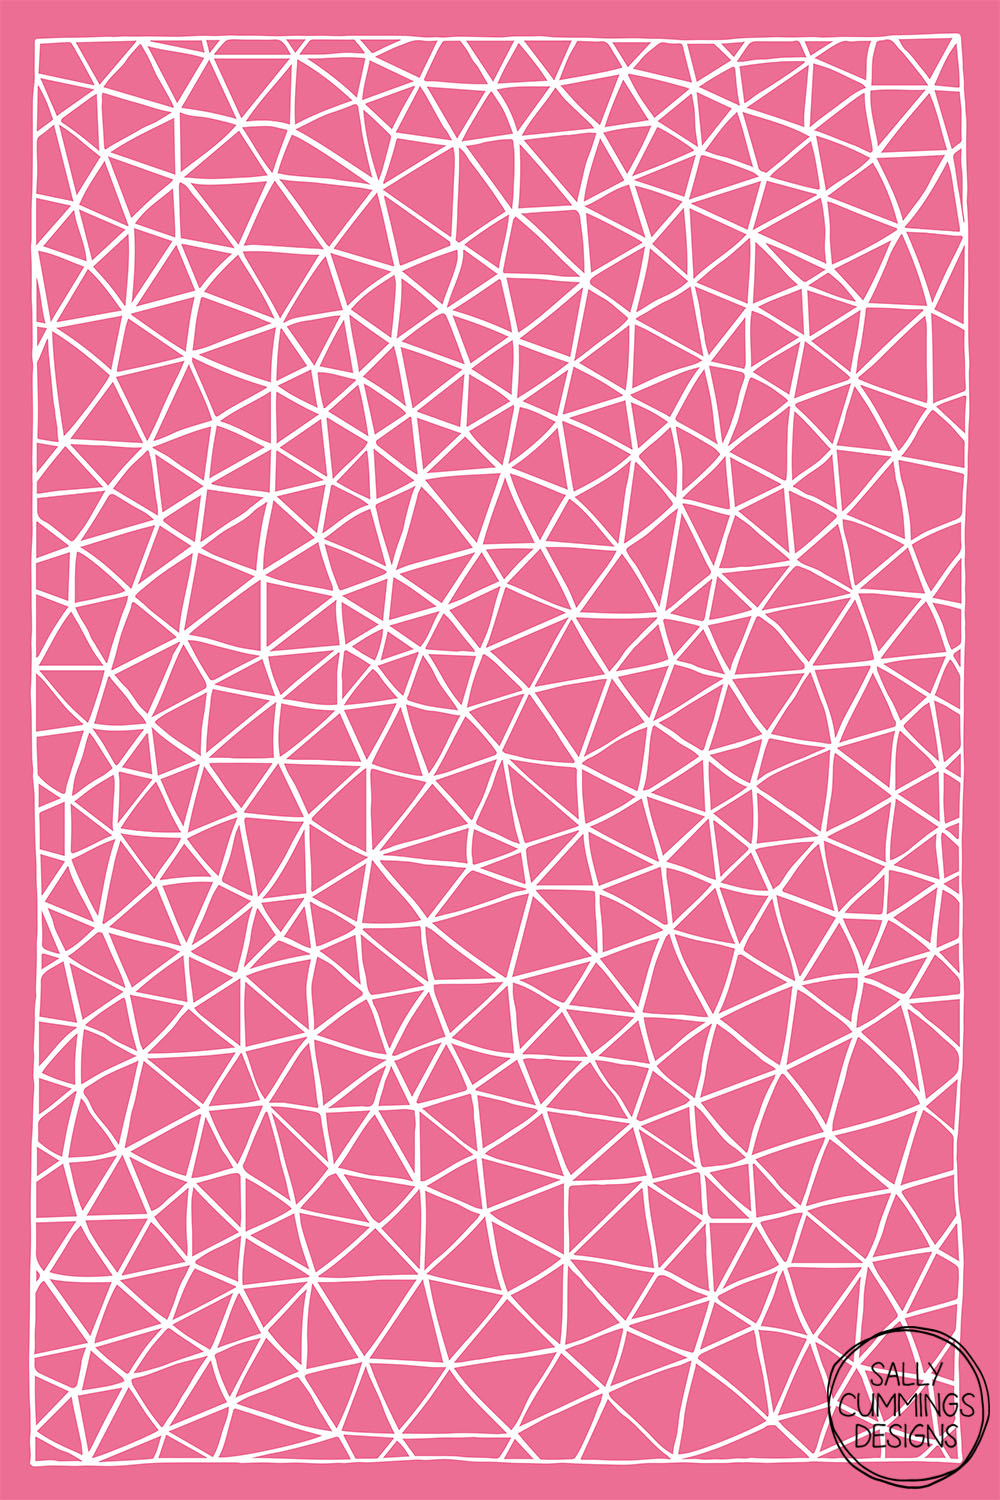 Sally Cummings Designs - Connectivity (White on Pink)